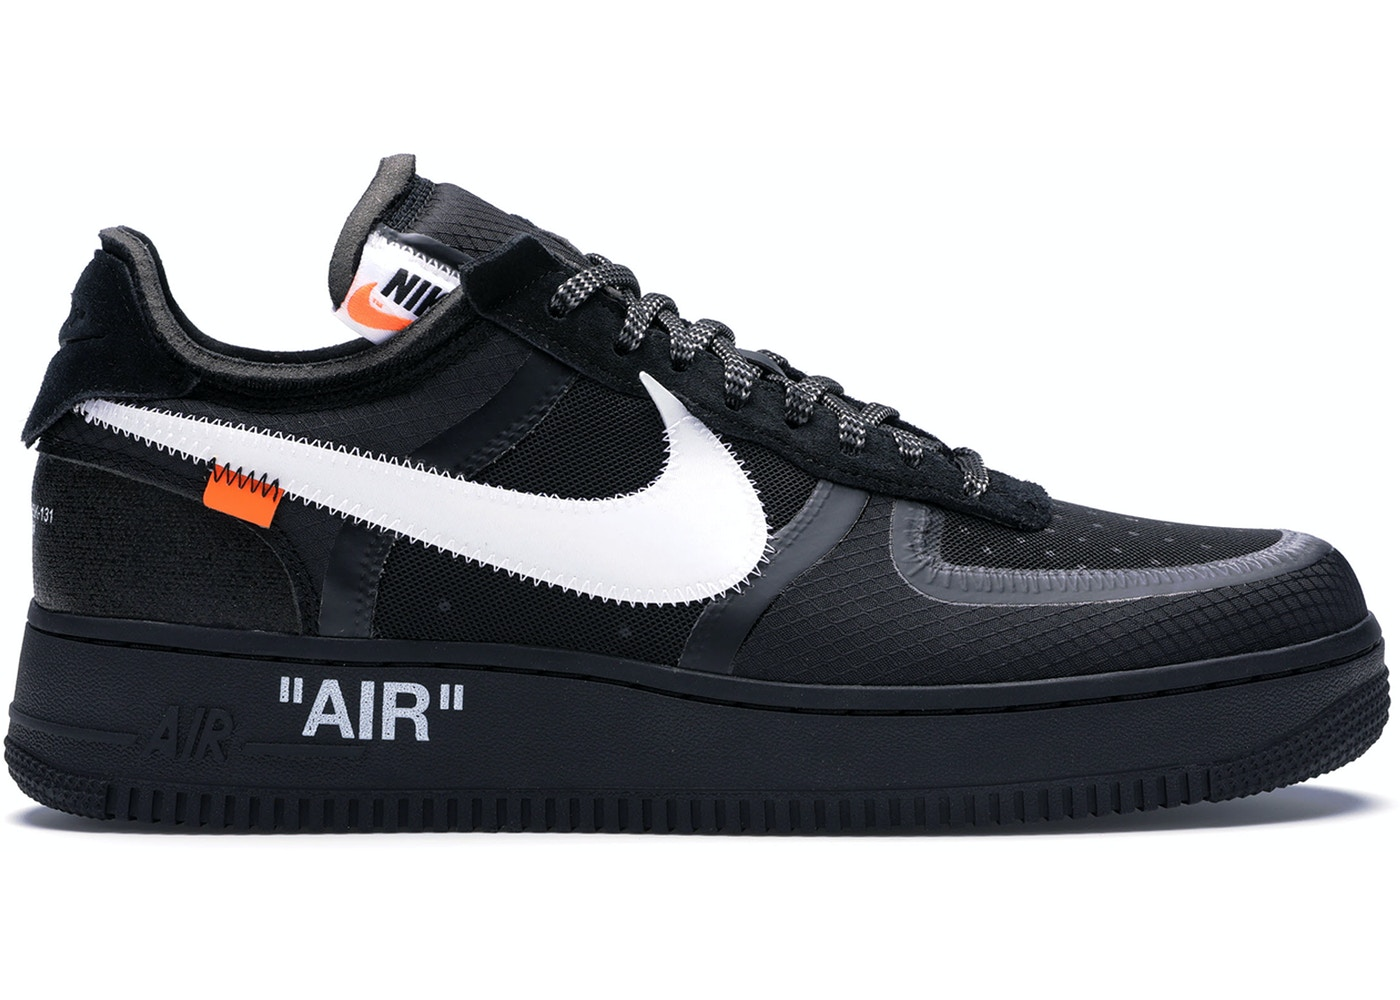 sports shoes 0e364 f90dc Air Force 1 Low Off-White Black White - AO4606-001